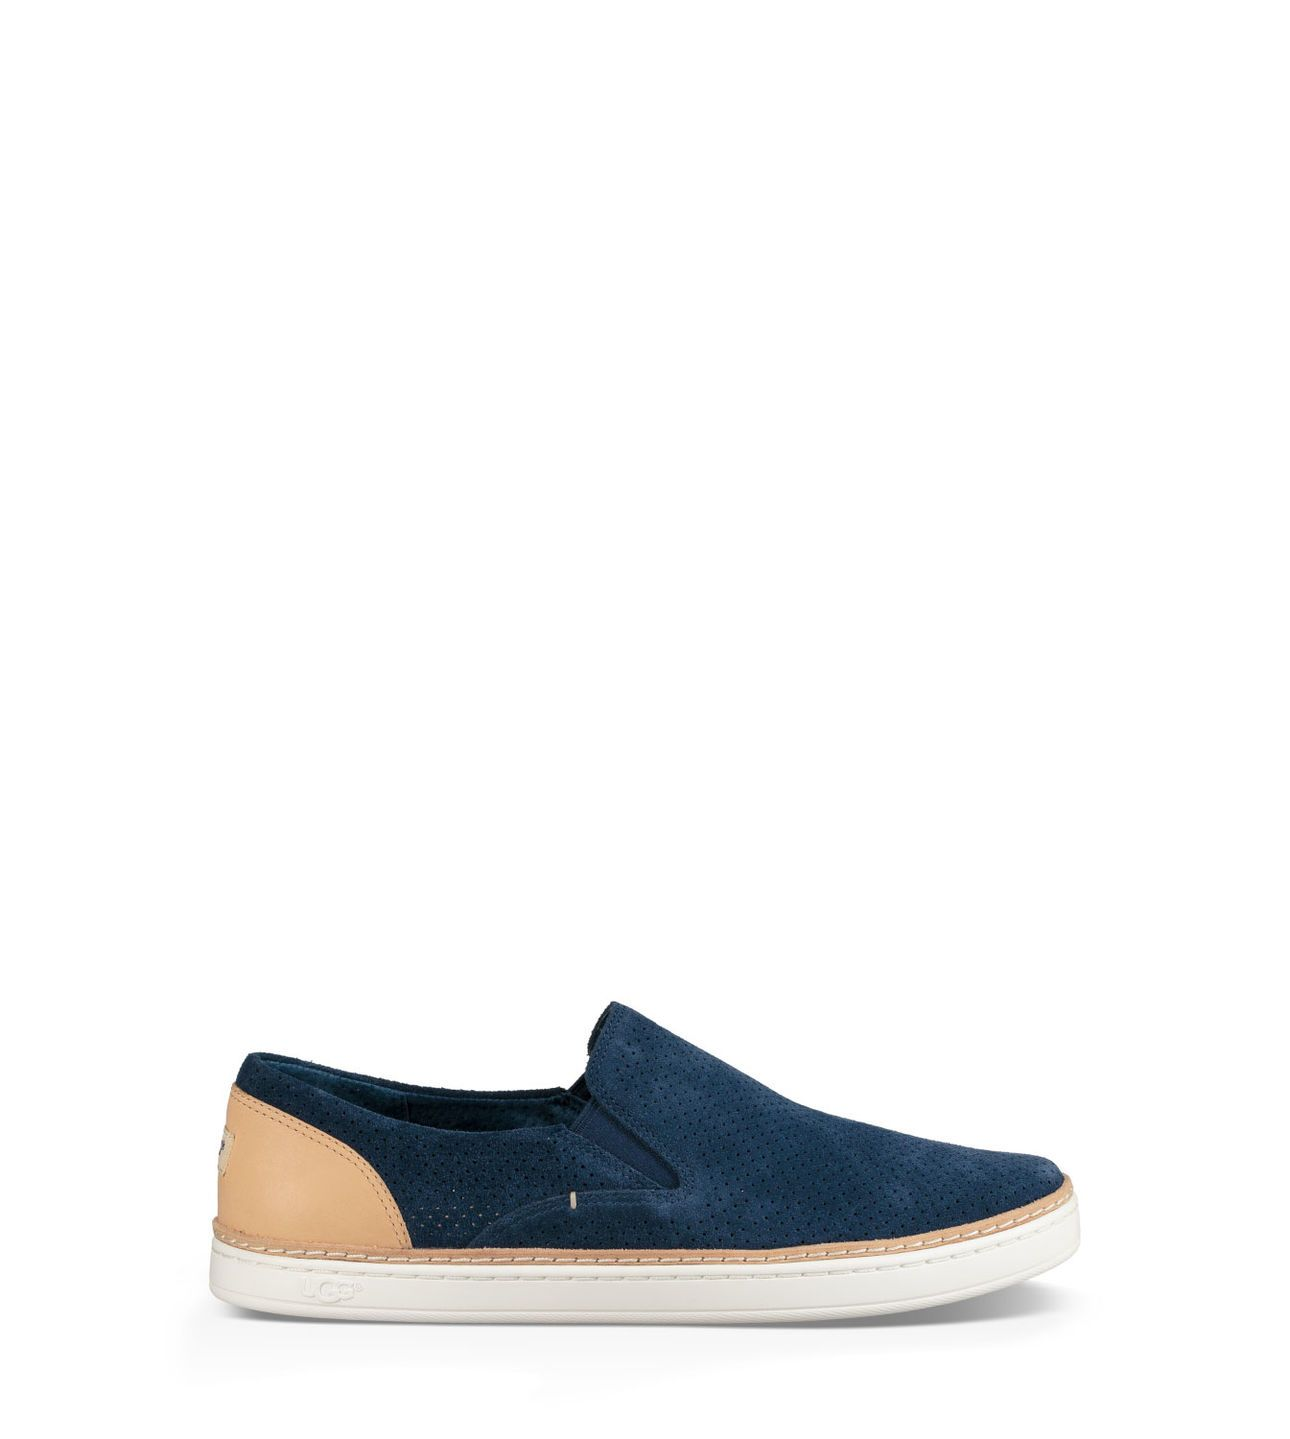 cd0dfe492e0 Shop the Women's Adley Perf Sneaker on the Official UGG® website and ...